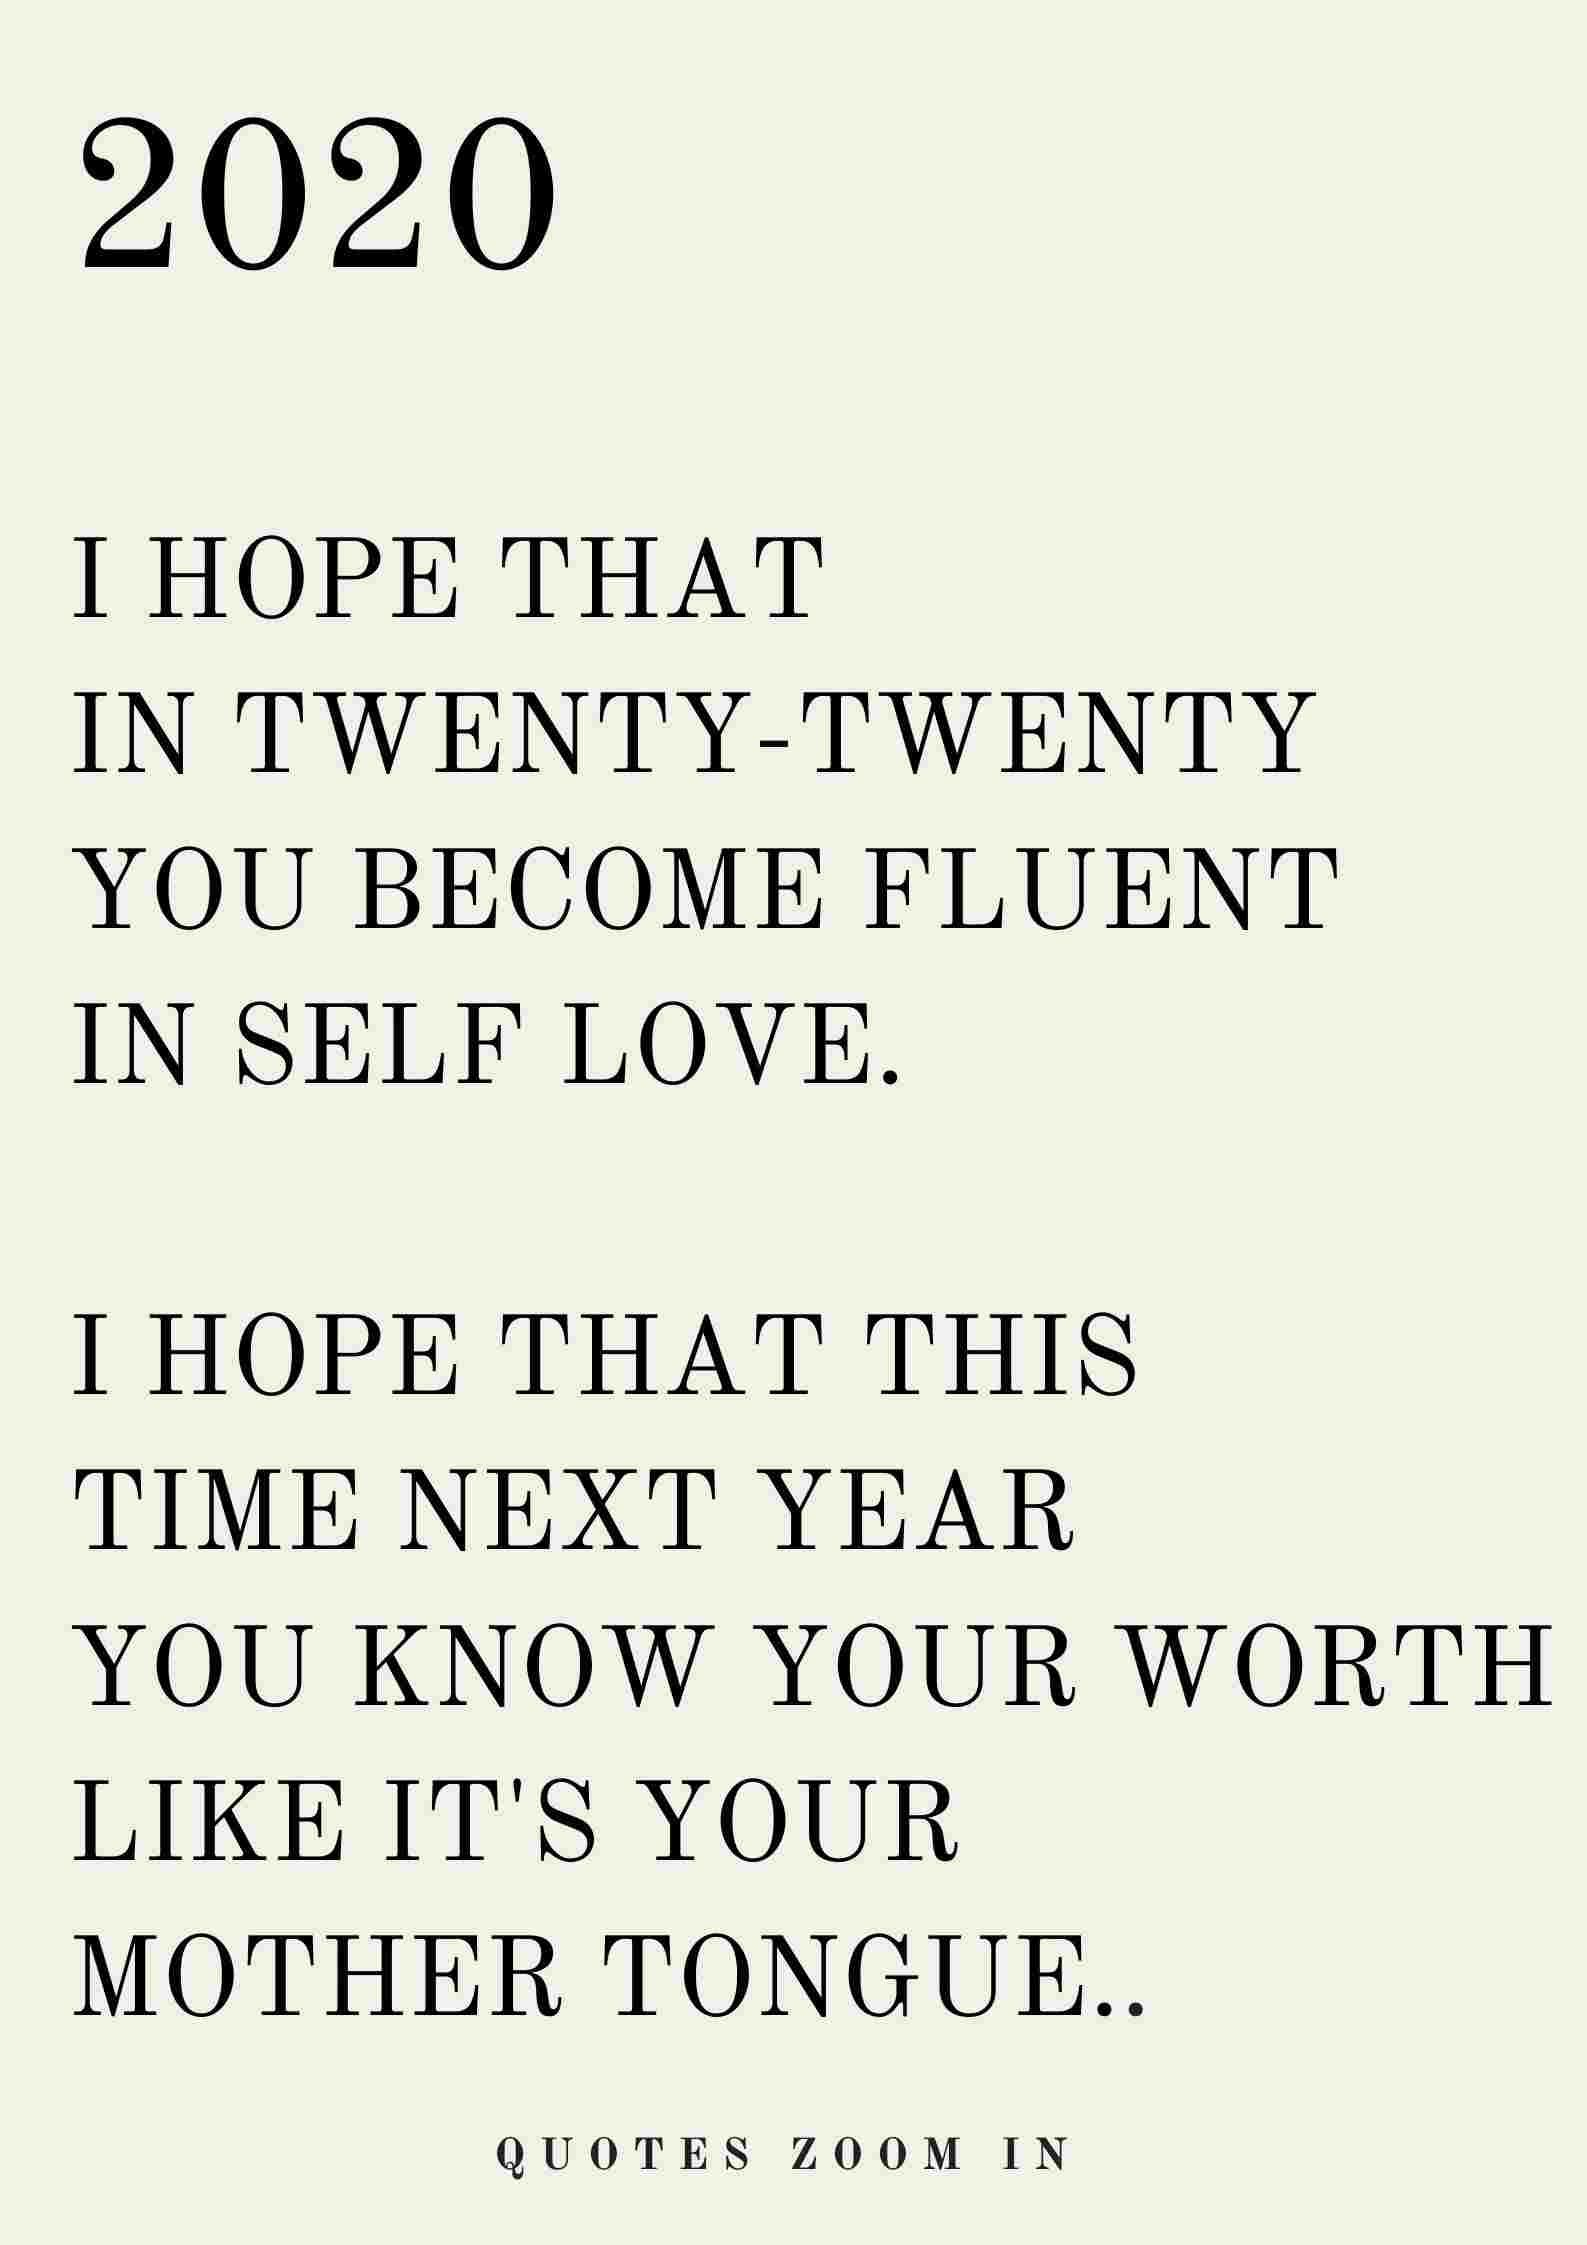 Happy new years to my family quotes 2020 Dear 2020, I